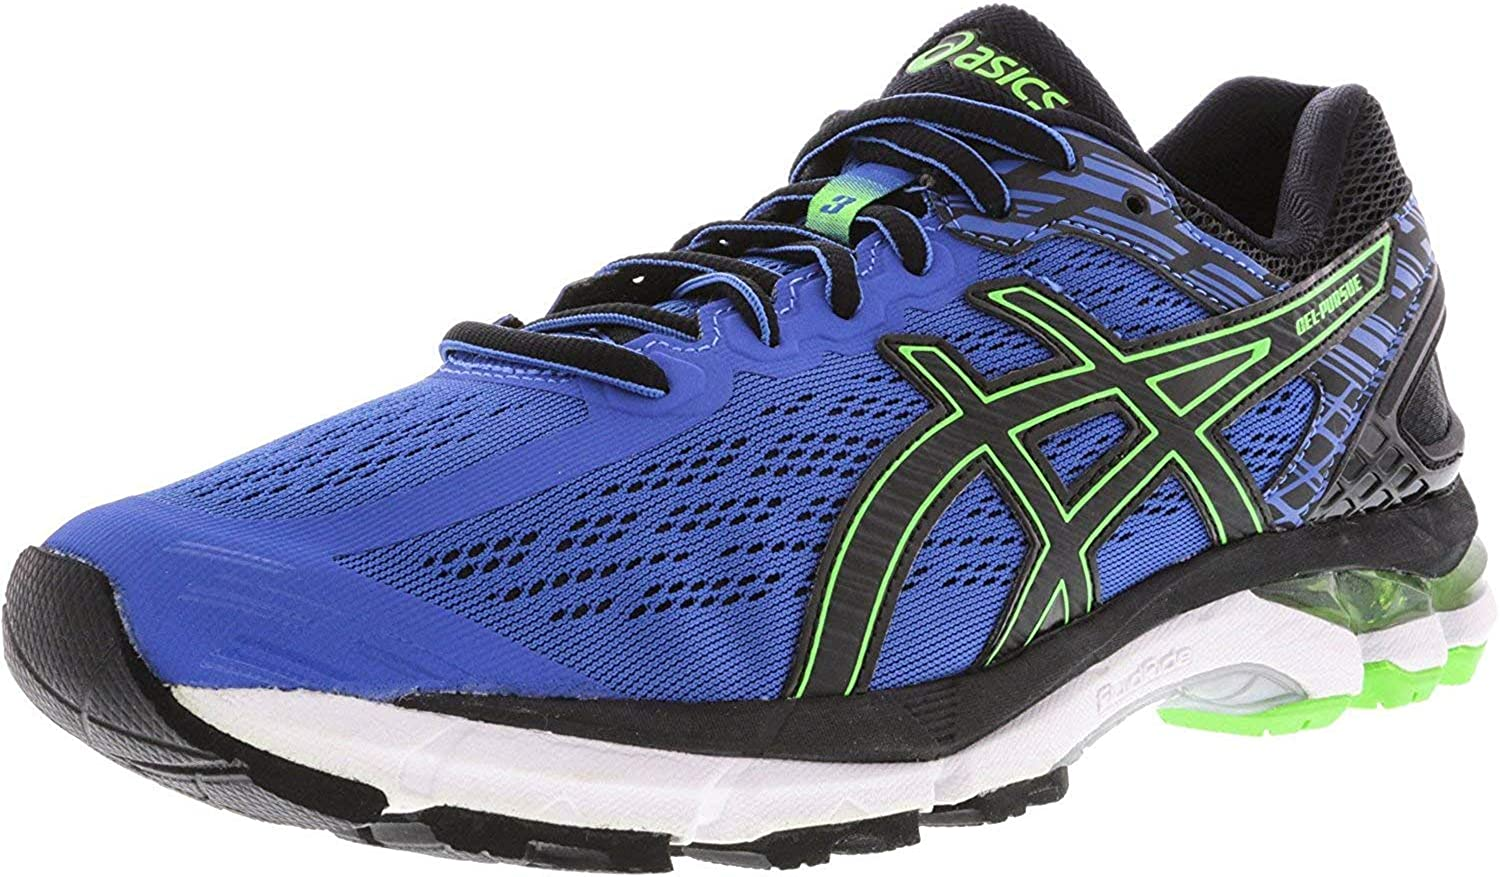 ASICS Mens Gel-Pursue 3 Running Athletic